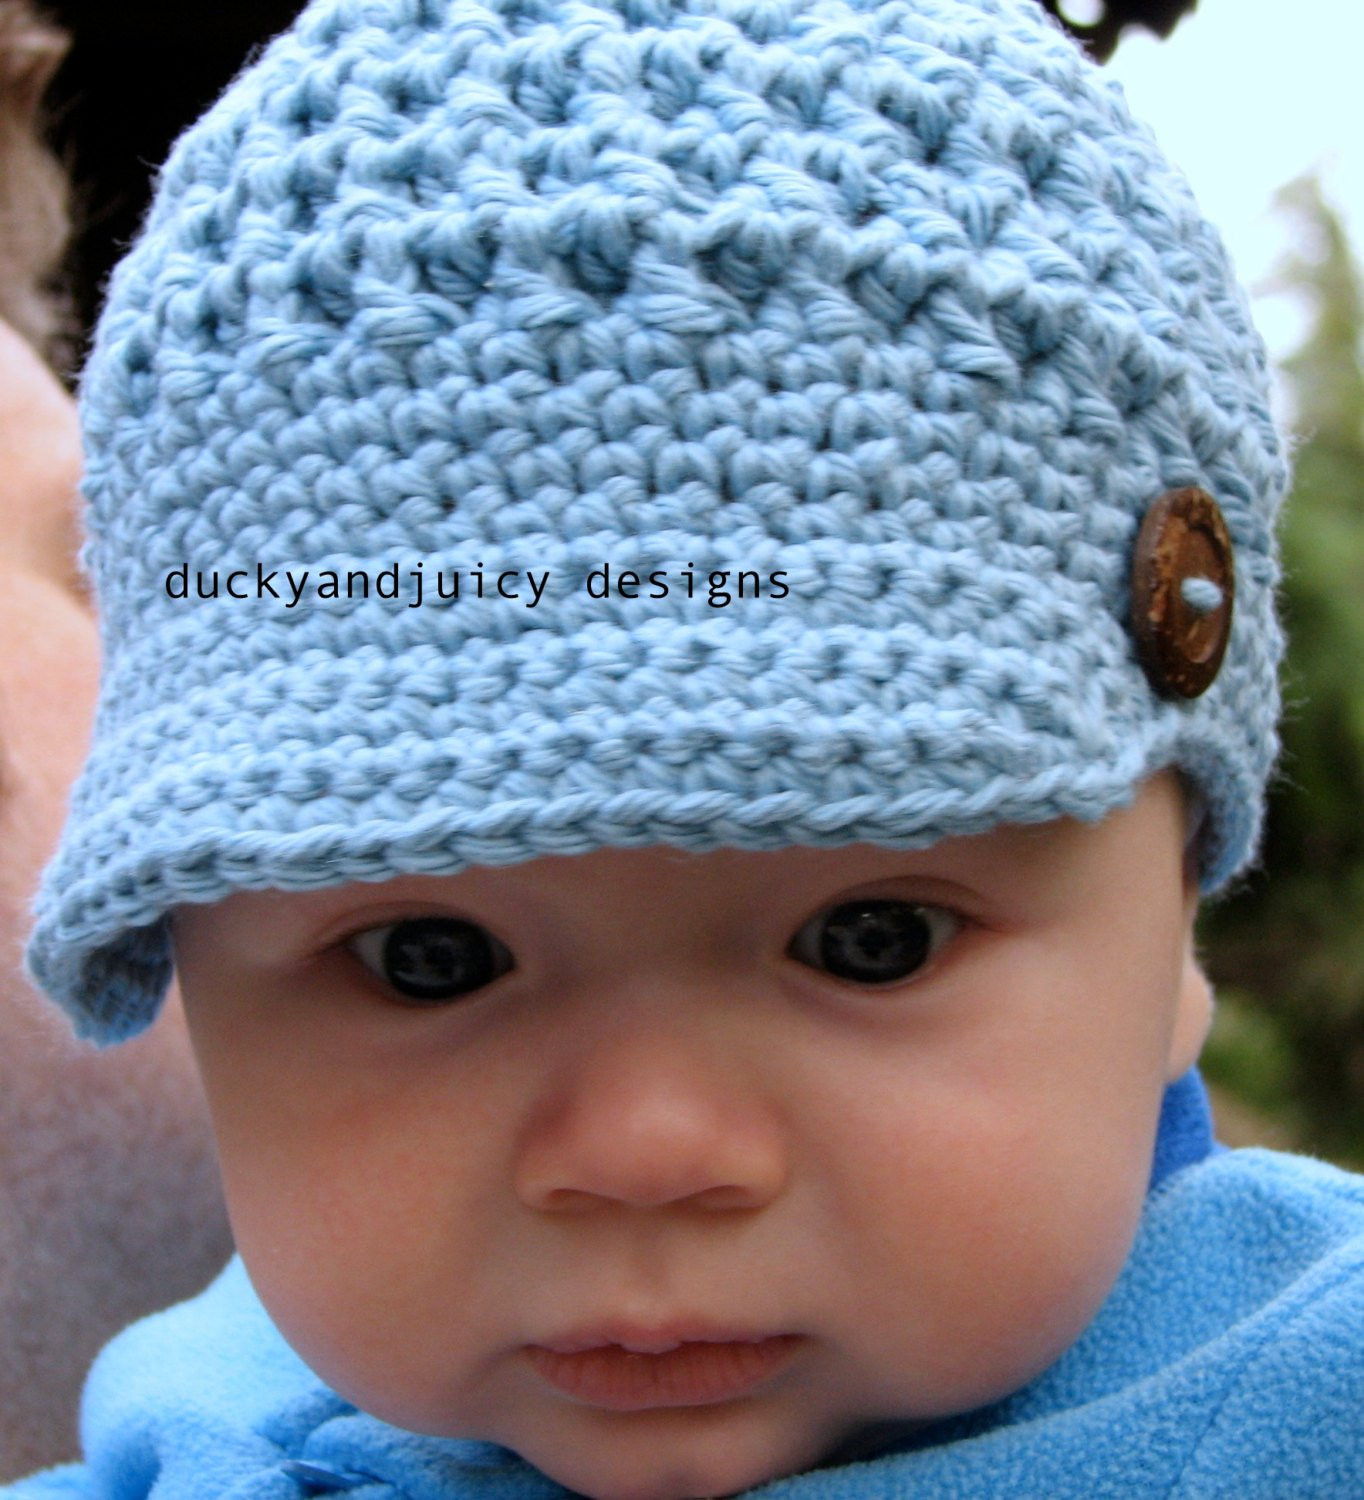 Crochet Girl Hat New Crochet Hat Patterns for Baby Boy Dancox for Of Superb 47 Pics Crochet Girl Hat